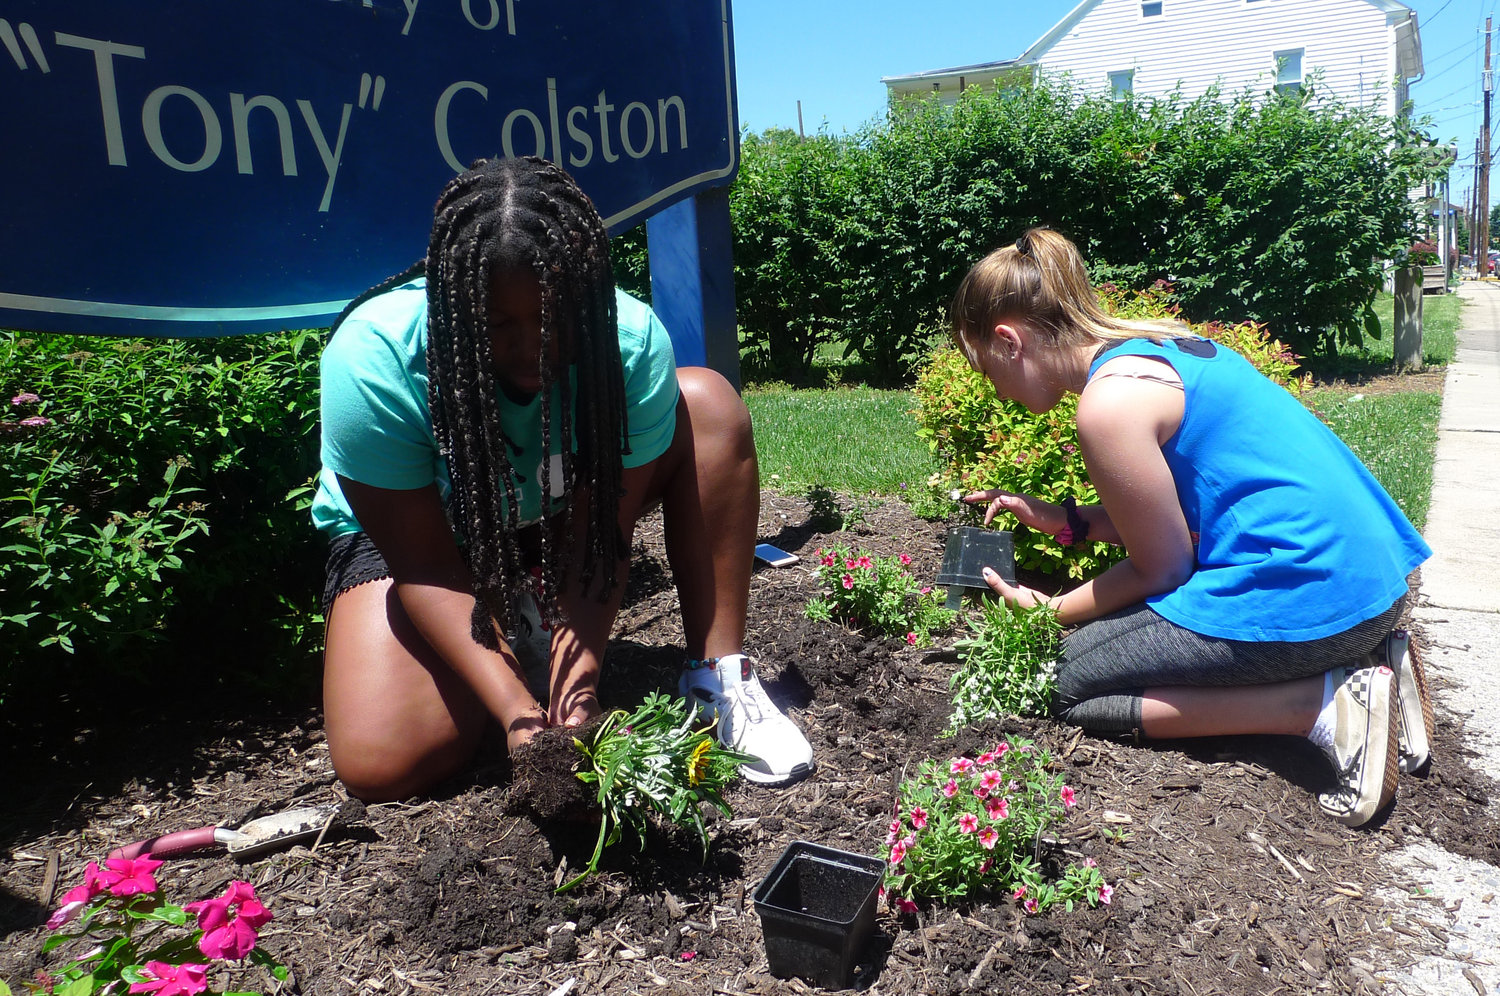 Ivory Parker of Genesis Court and Kiley Shomper of North Catherine Street plant new flowers at Colston Park on South Wood Street to replace ones that were ripped out by vandals on June 6. Both are members of the Middletown Communities That Care Youth Corps, which had just recently planted flowers and spread mulch in the park before their work was ruined by the vandals.